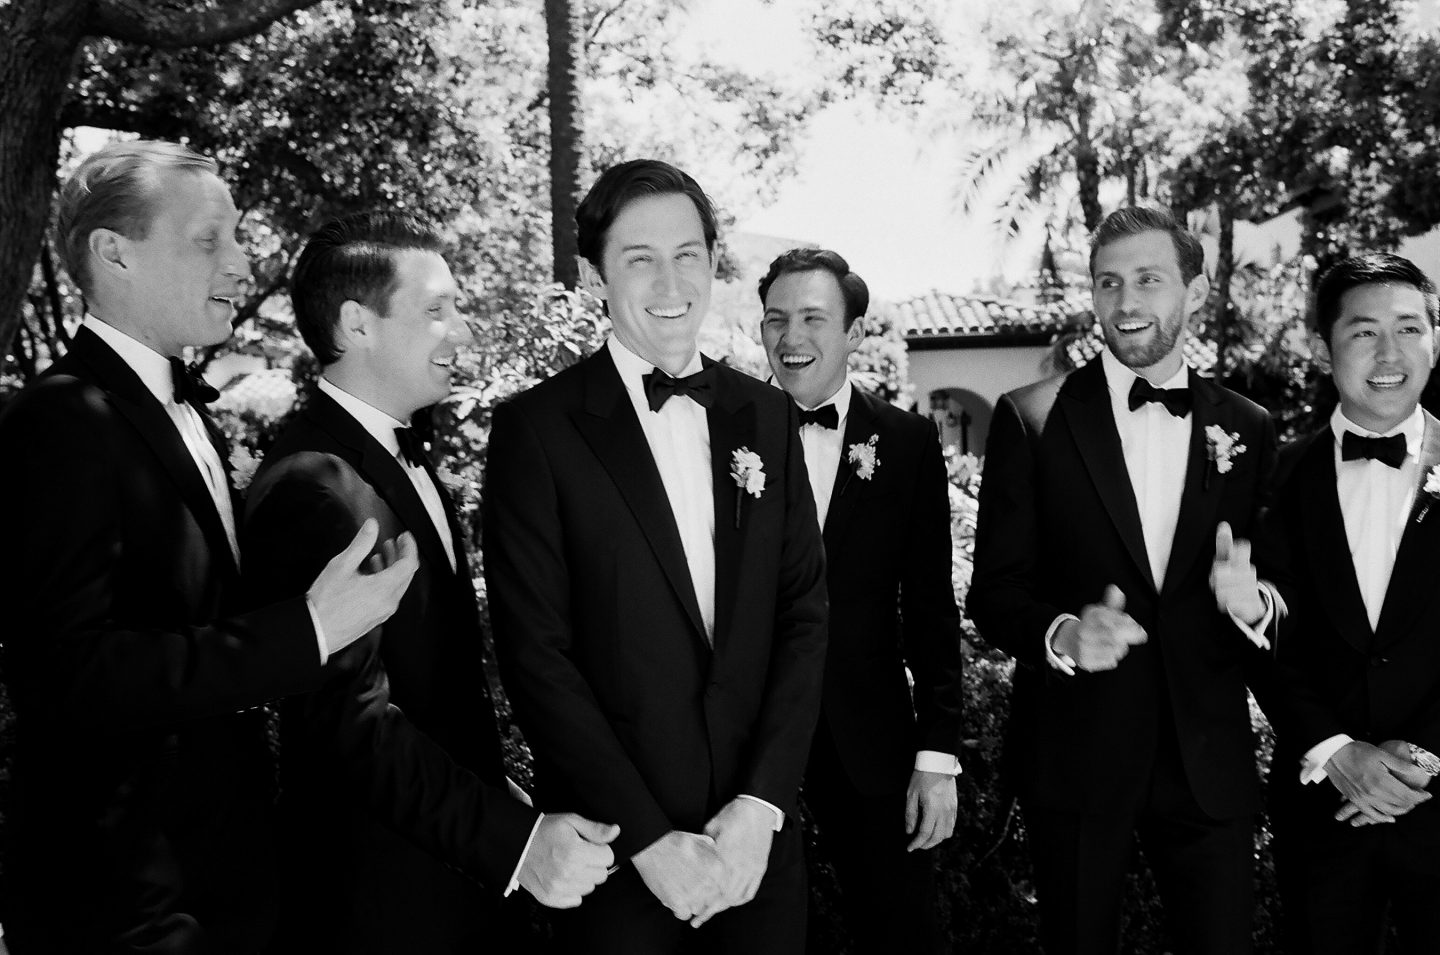 Groom and groomsmen at this Sea Island wedding weekend in Georgia, USA | Photo by Liz Banfield